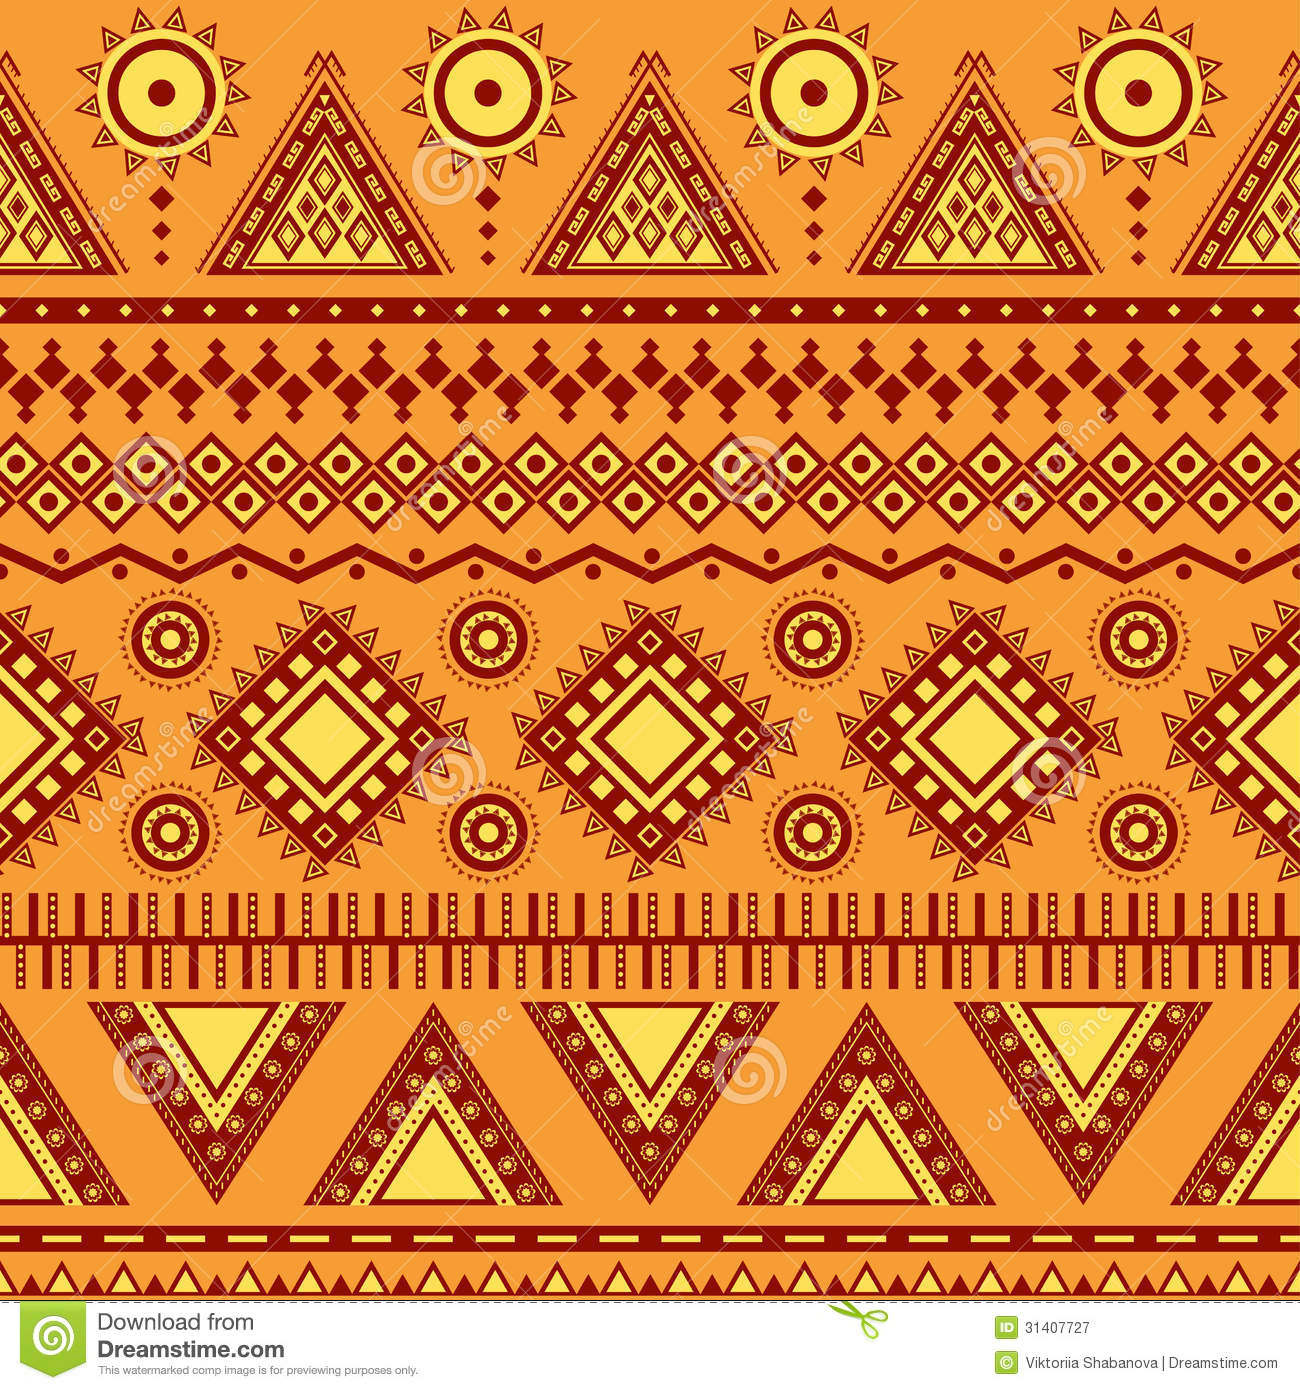 native american fabric wallpaper amp gift wrap  Spoonflower